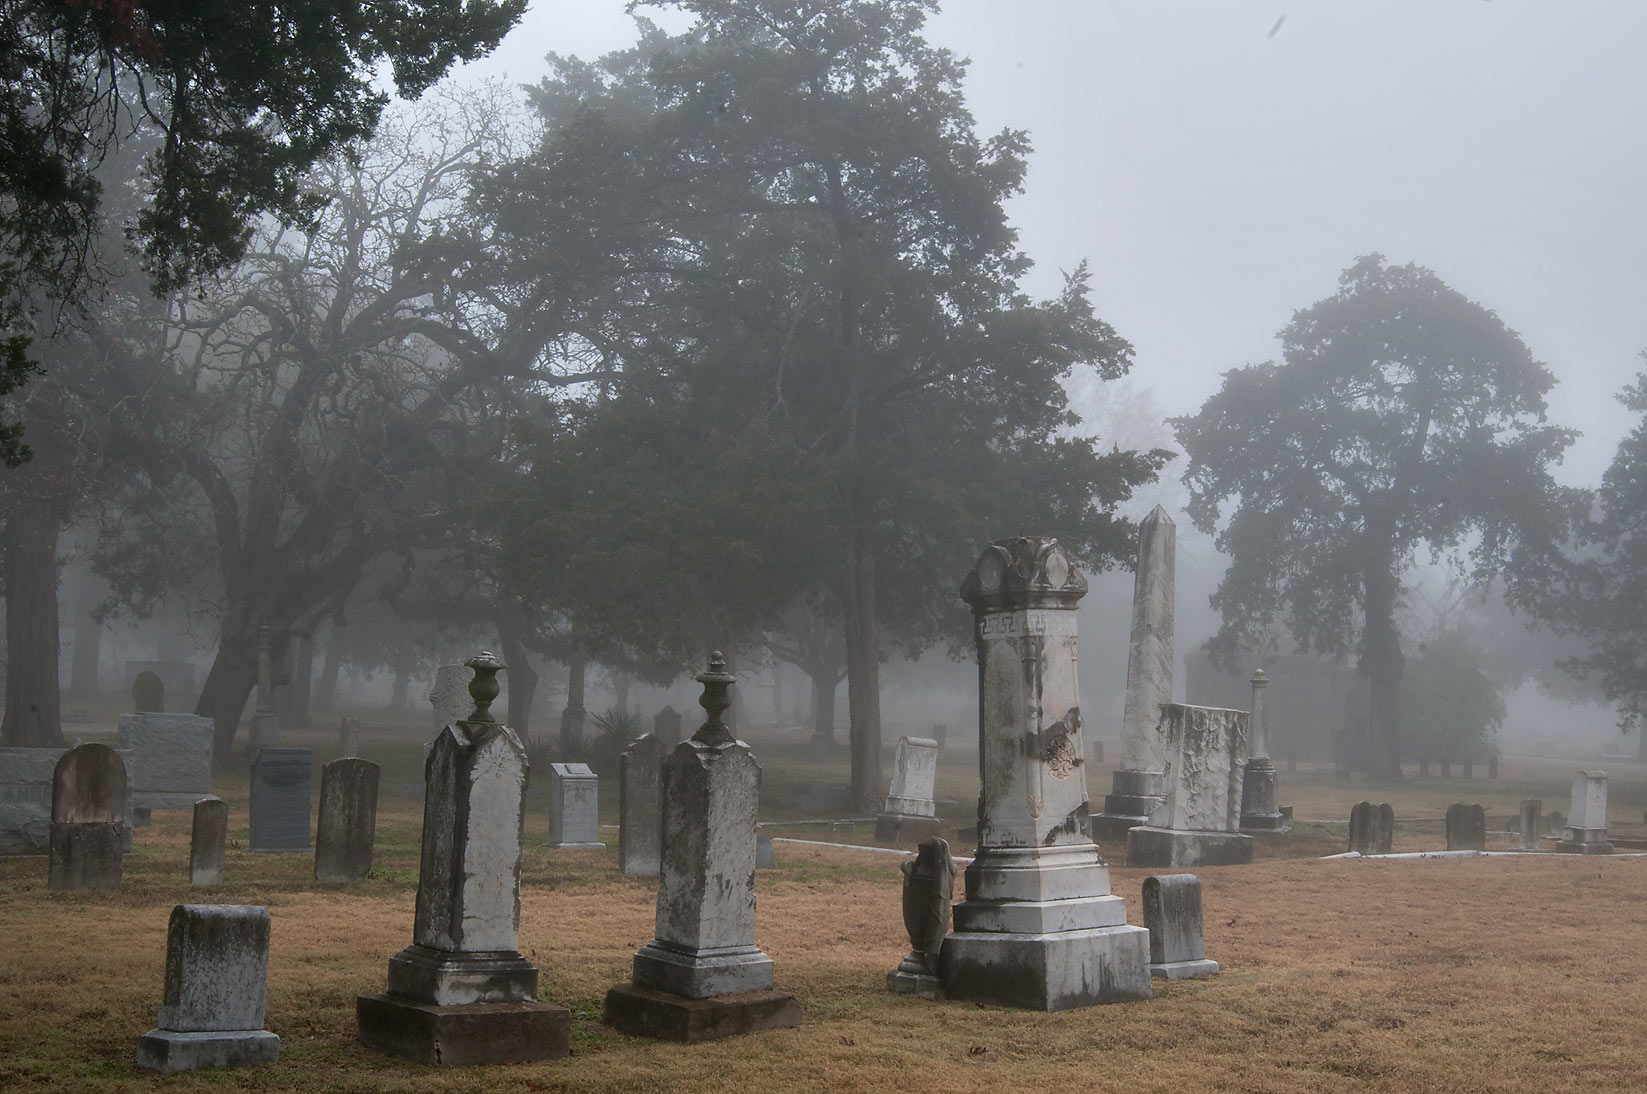 Tombs of City Cemetery in fog. Bryan, Texas